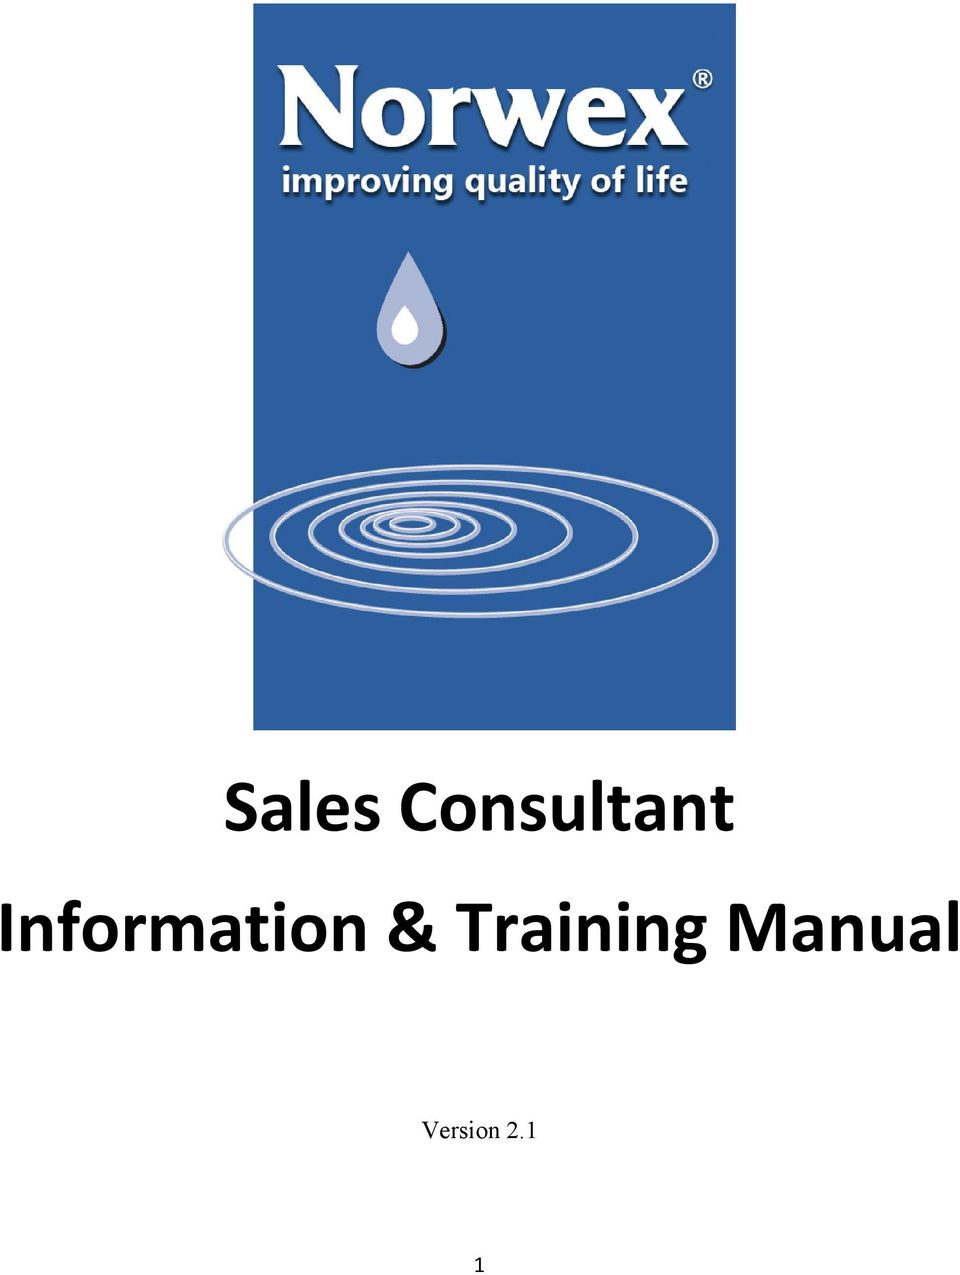 Sales consultant information training manual pdf page 5 a welcome to norwex b mission and ideology core values operating philosophy and vision statement c short history d entry into north america e fandeluxe Choice Image